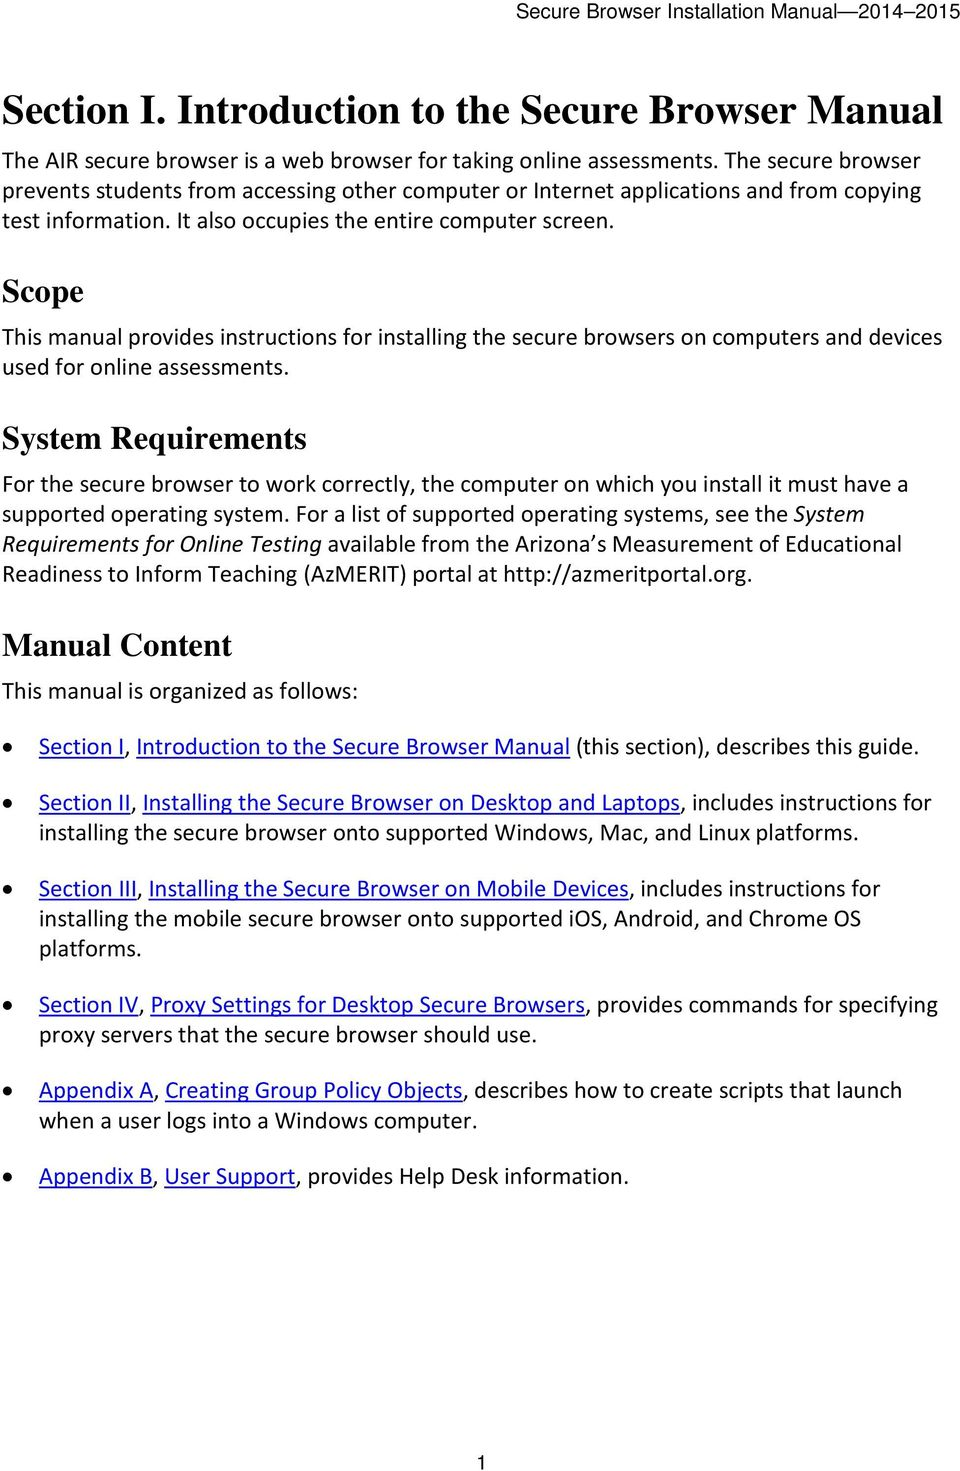 Scope This manual provides instructions for installing the secure browsers on computers and devices used for online assessments.